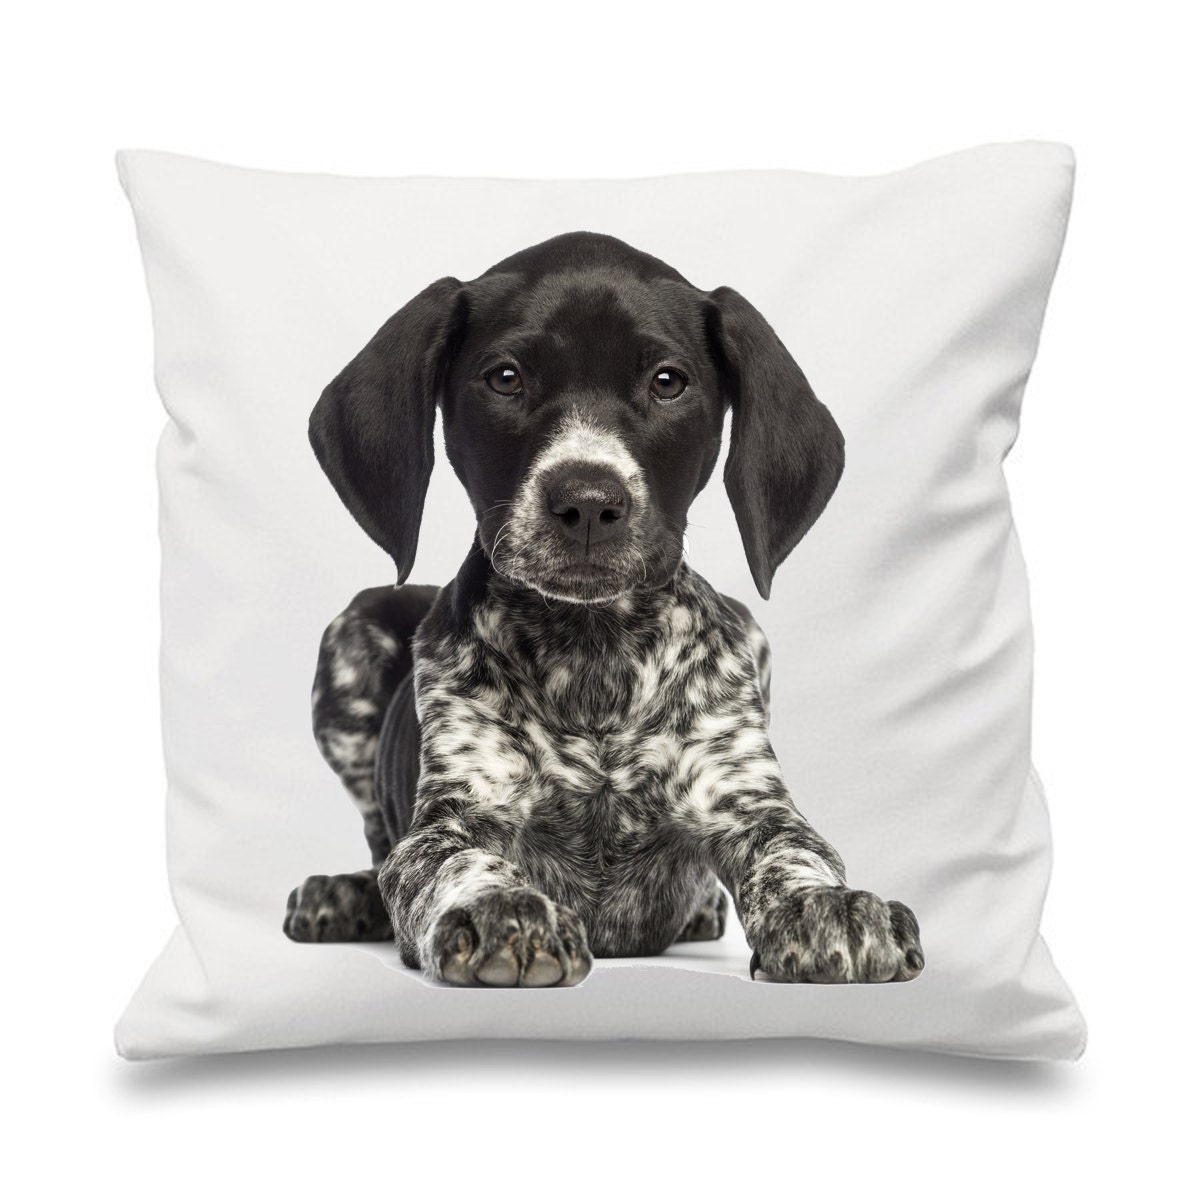 german short haired pointer 18 x 18 filled sofa